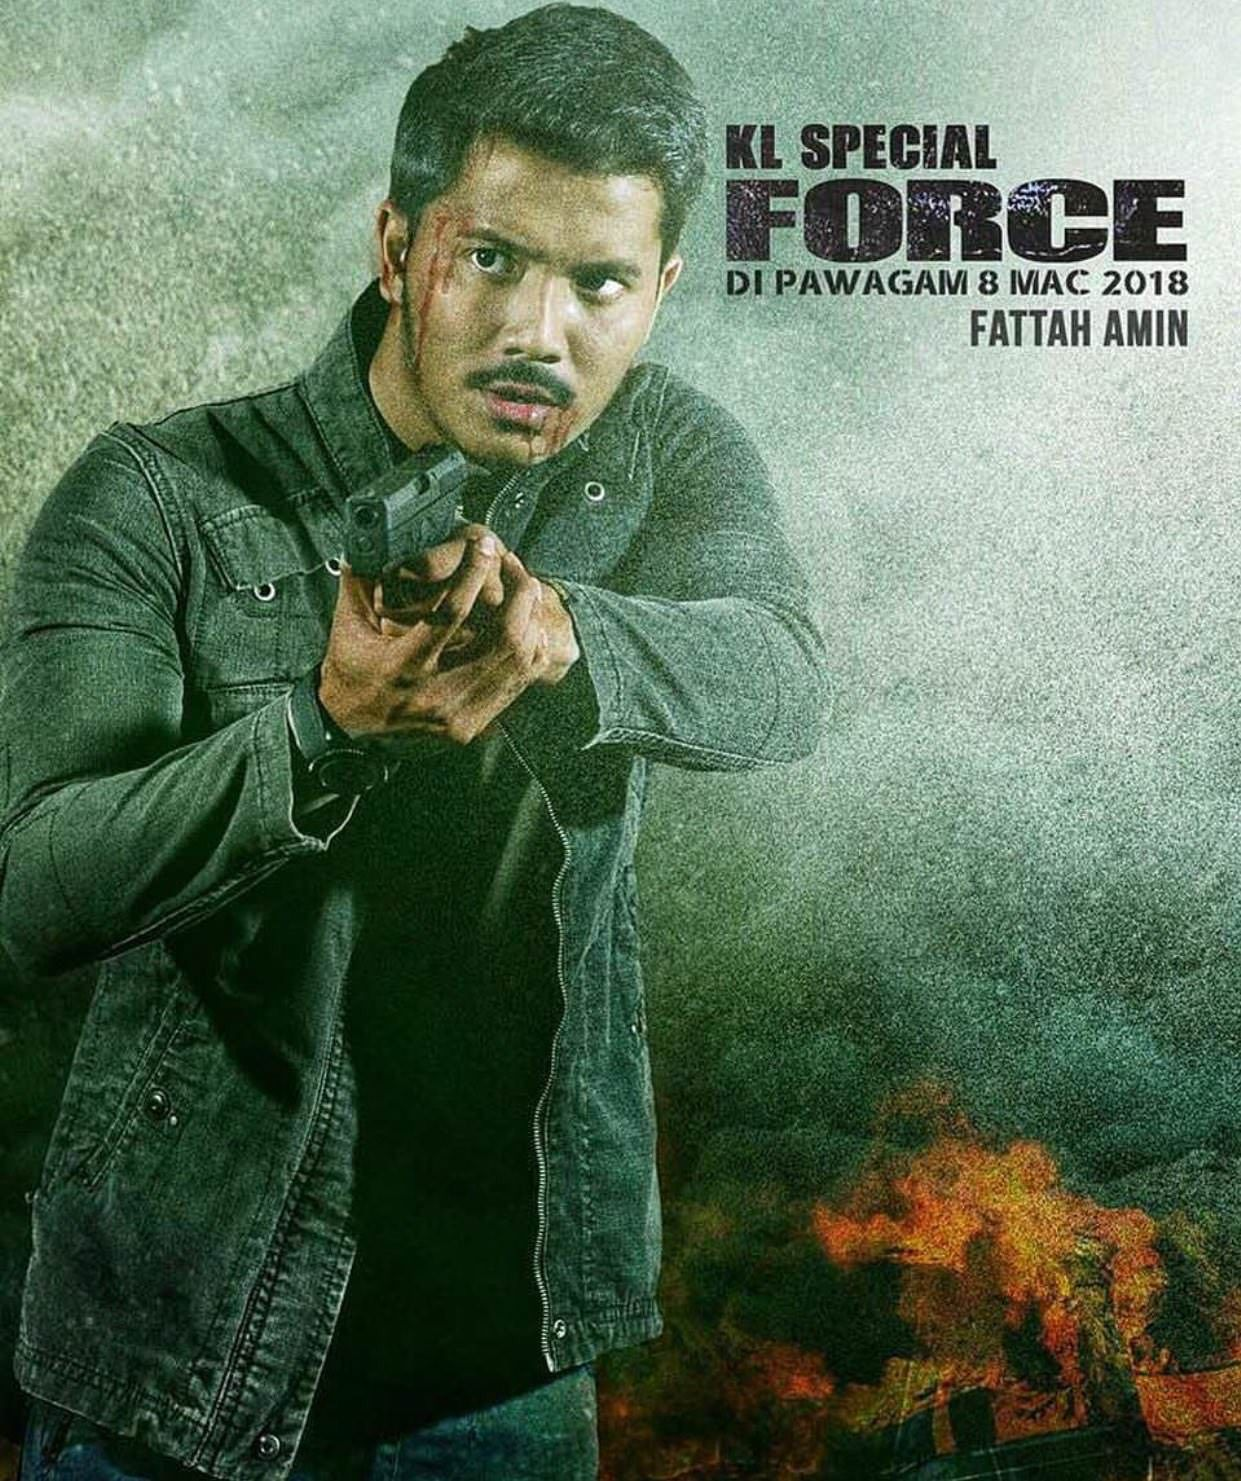 Kl Special Force Pencuri Movie Special Force Force Movie Special